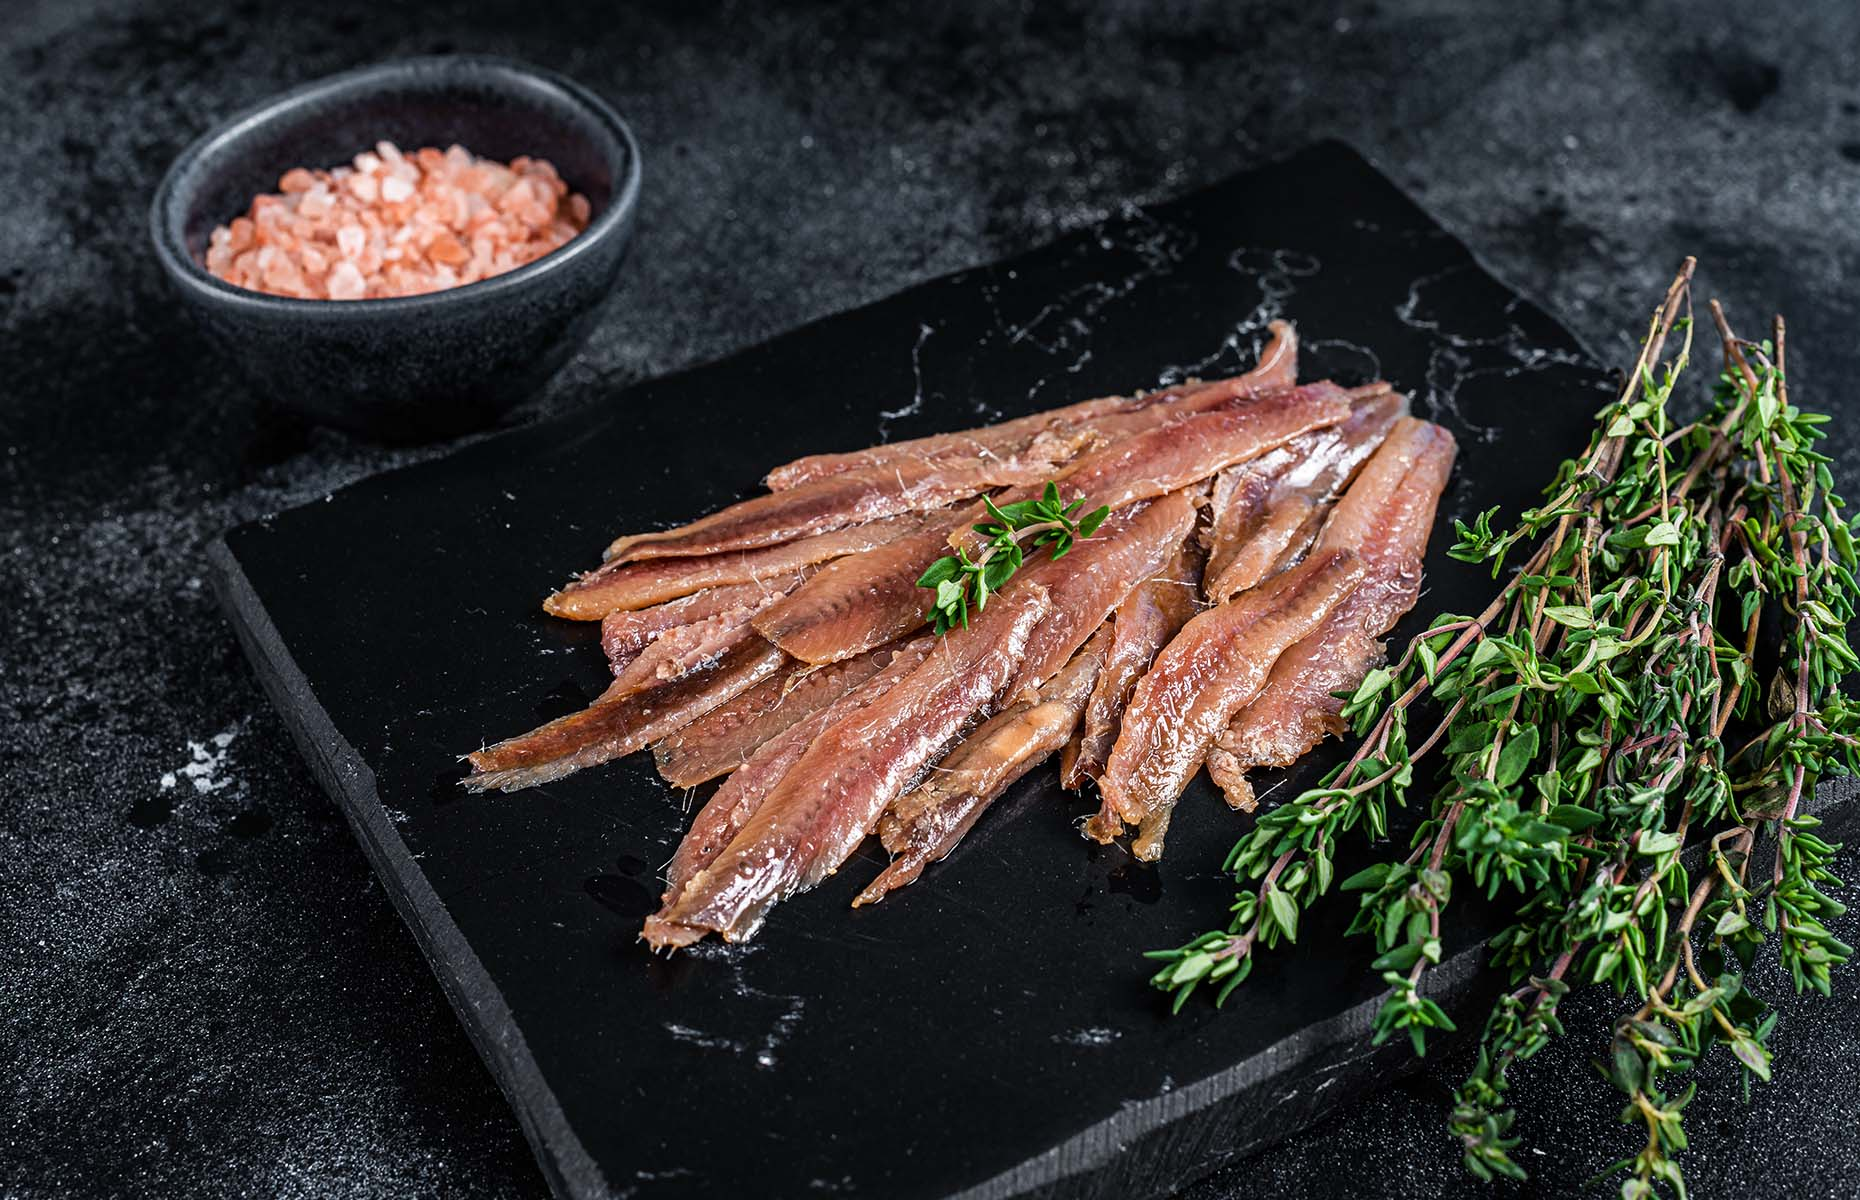 Anchovy fillets in olive oil (Image: Mironov Vladimir/Shutterstock)